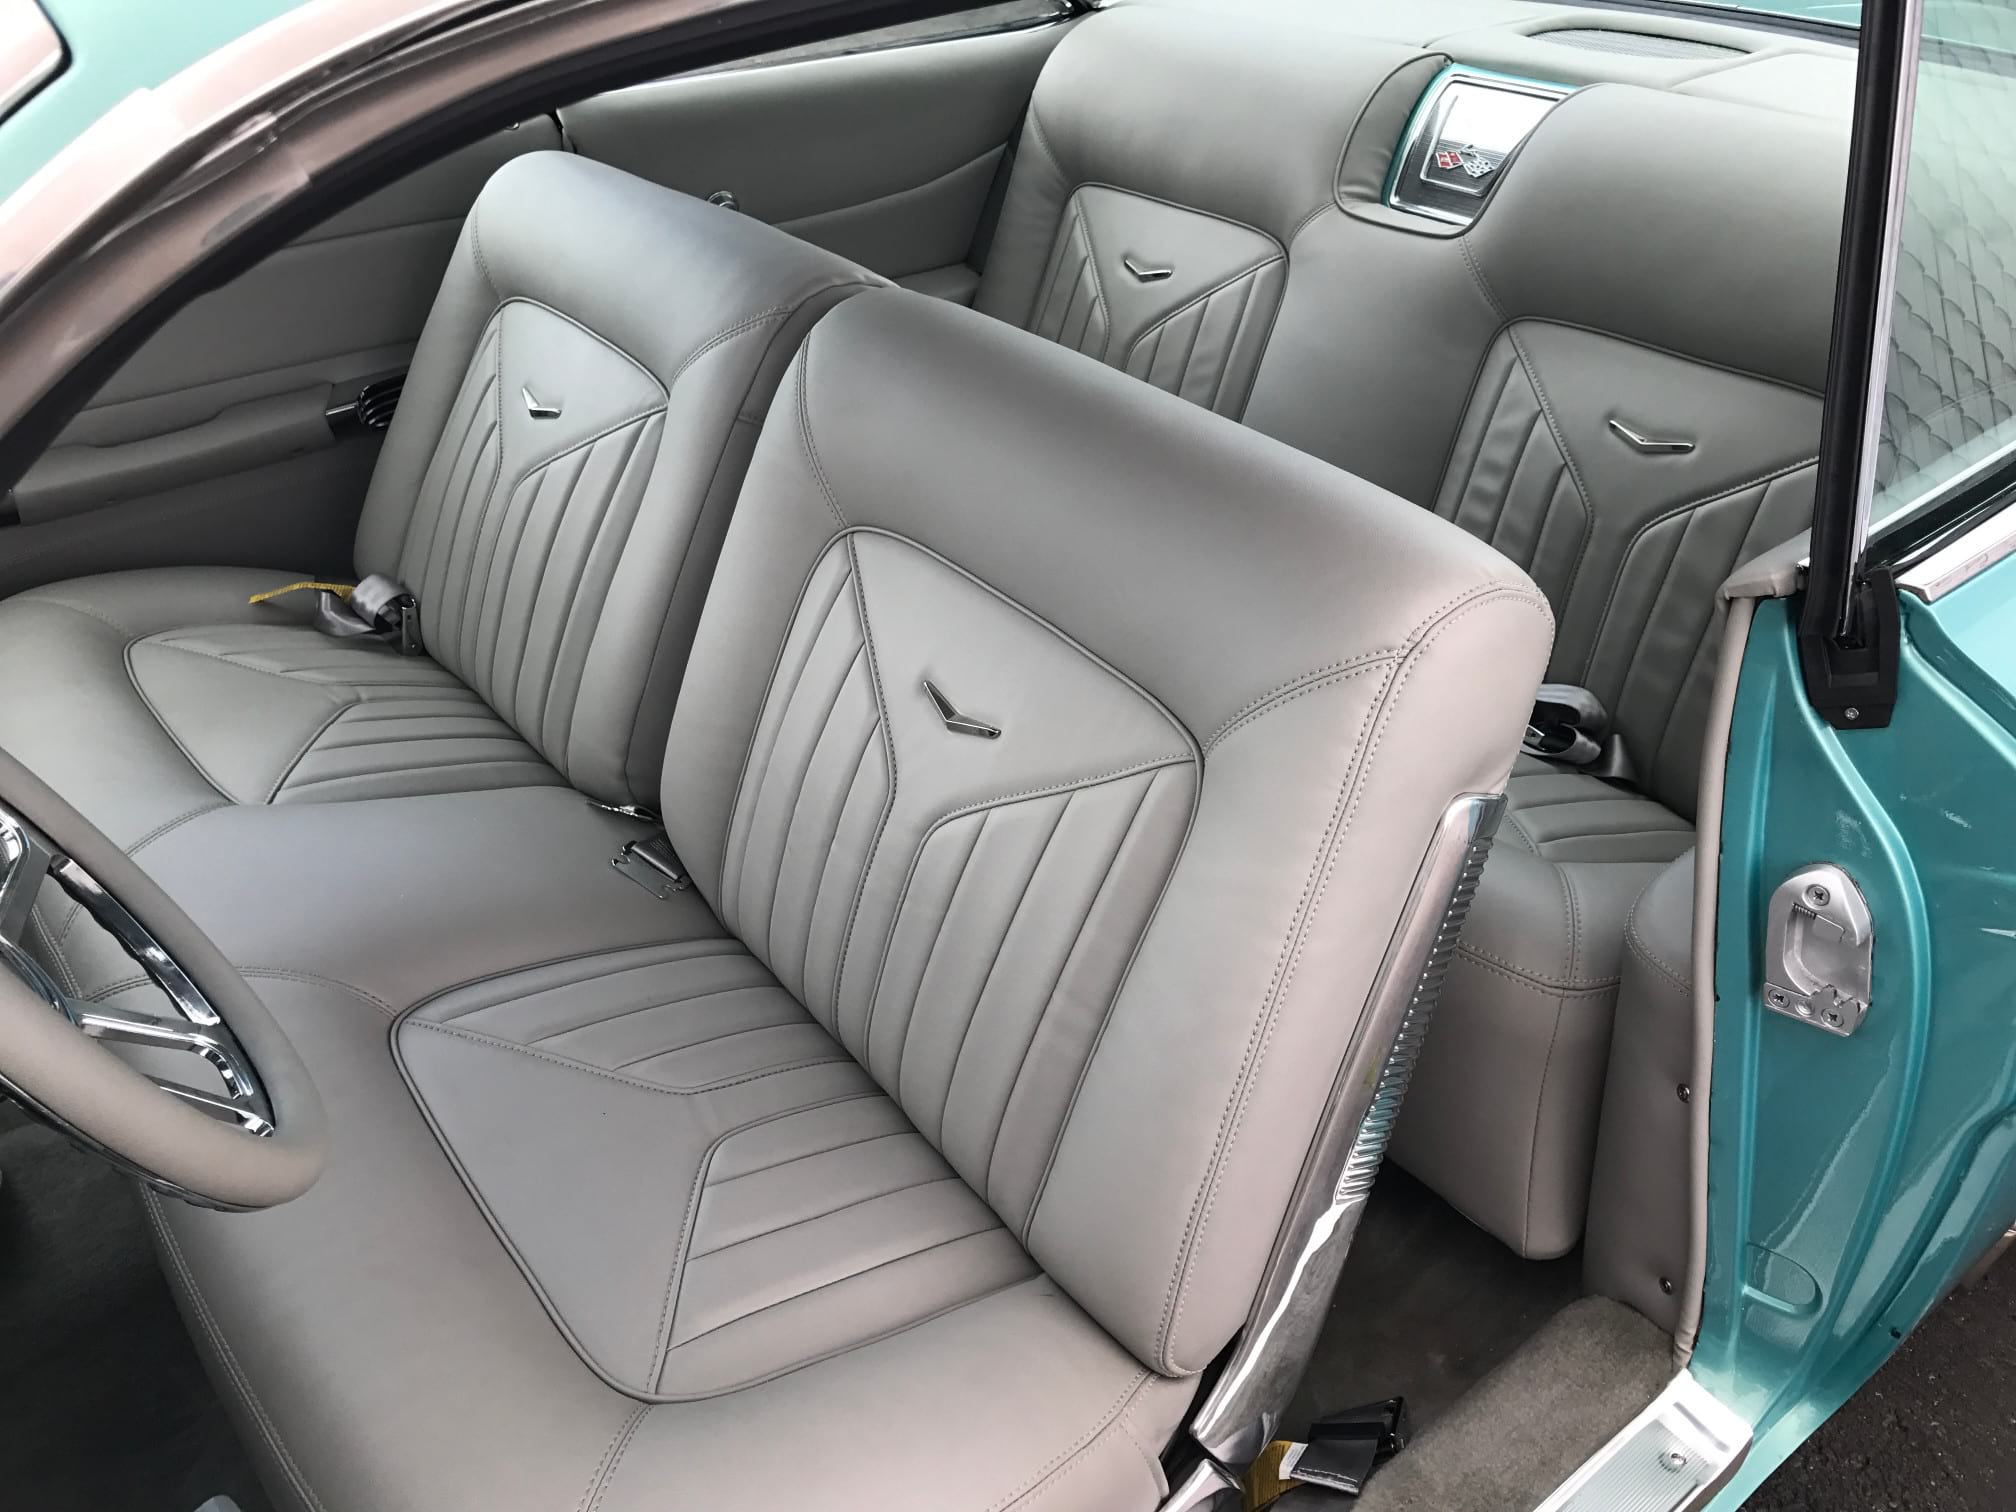 newly upholstered car seat